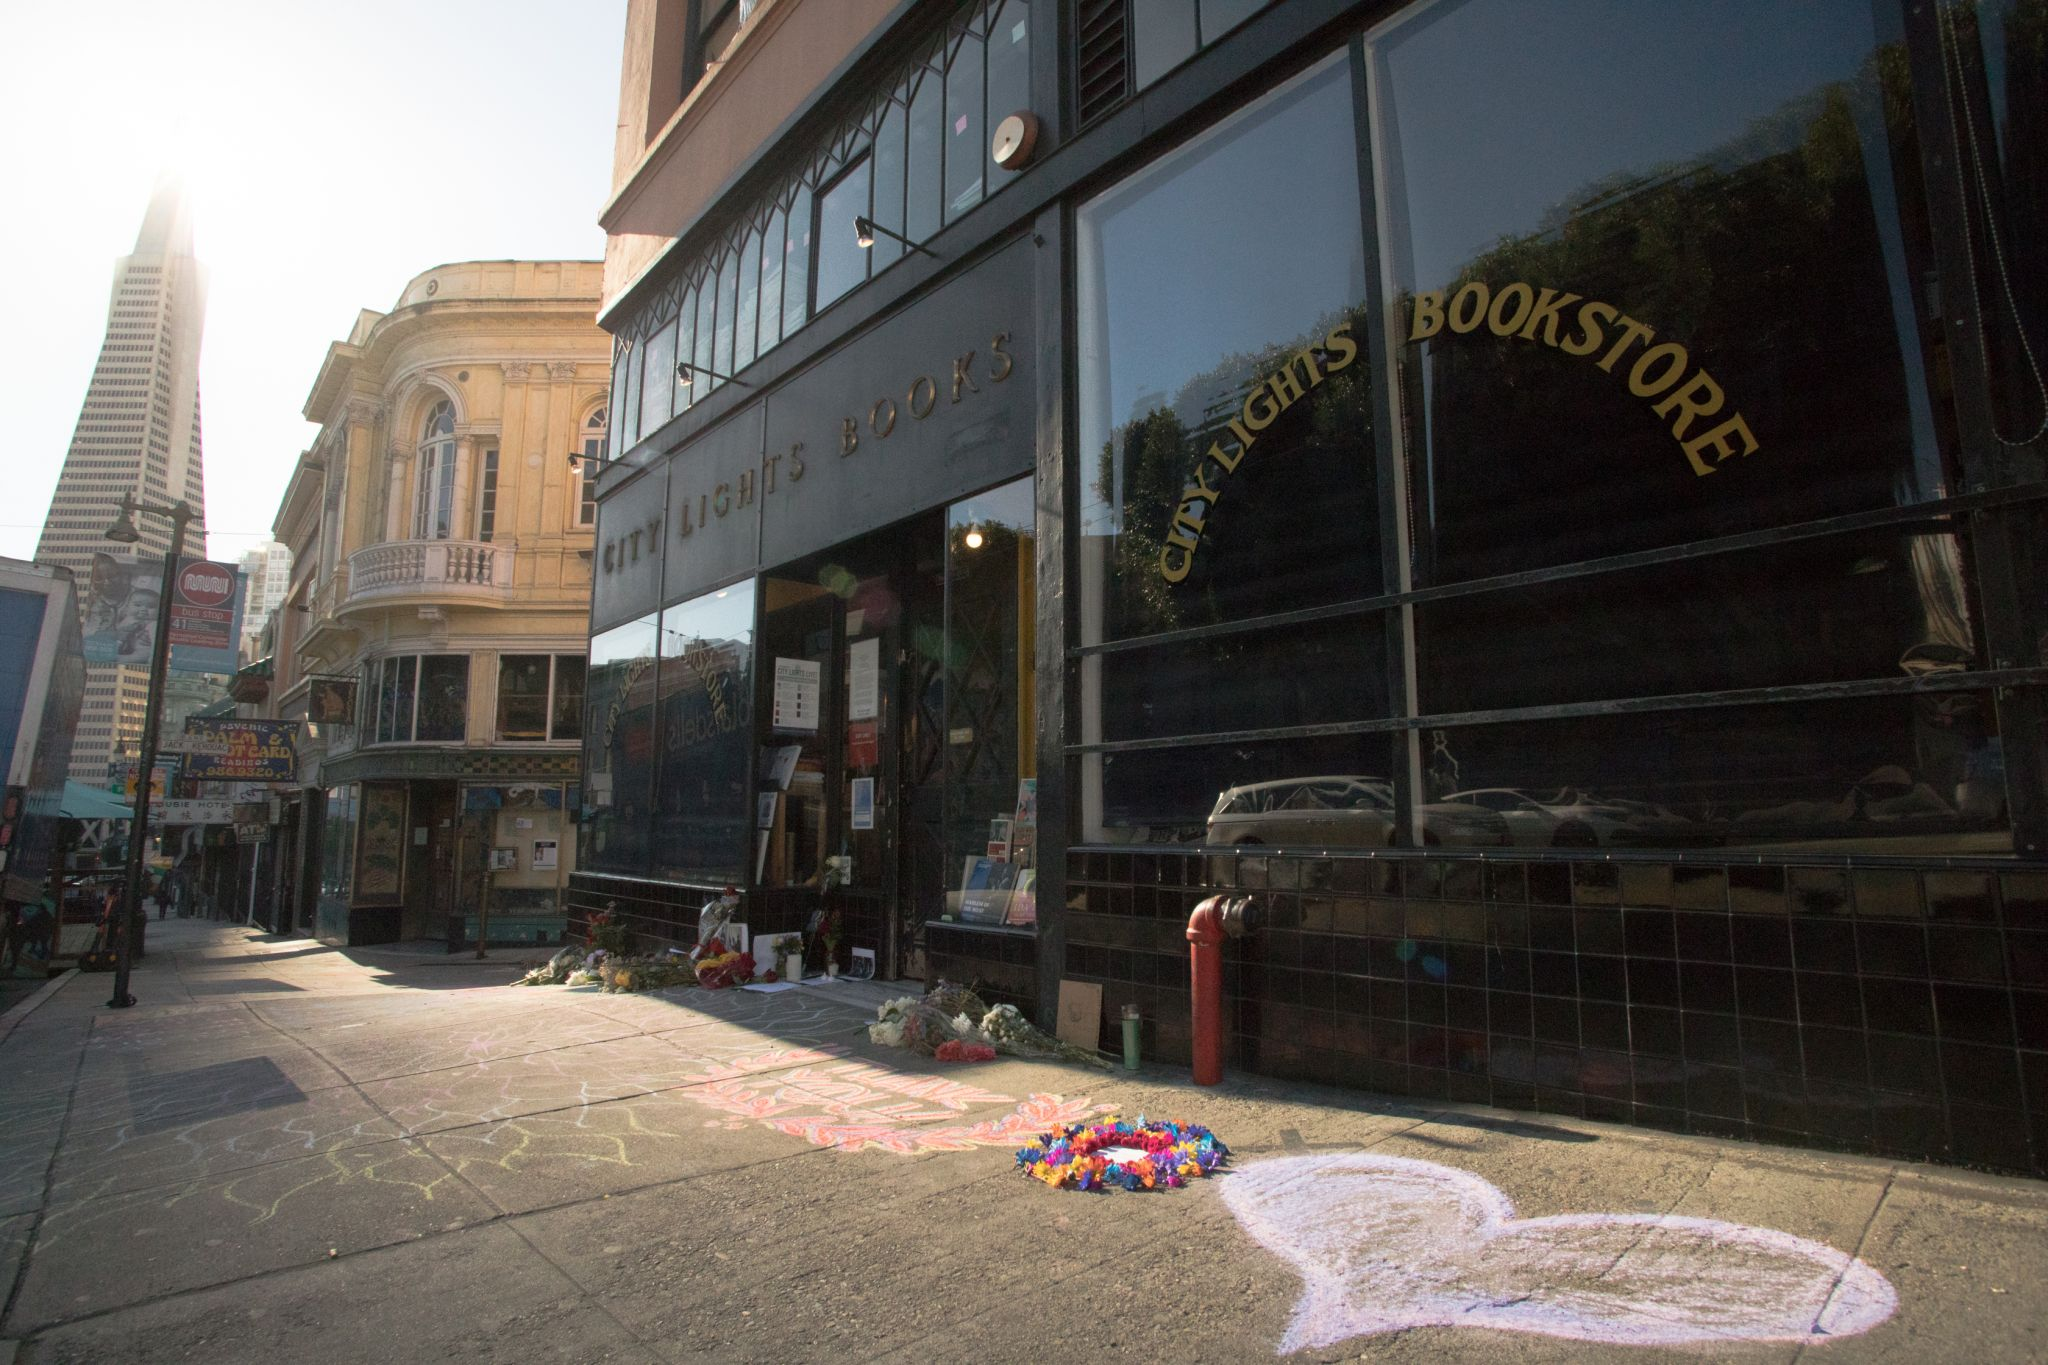 Chalk art covers the sidewalk in front of City Lights bookstore in North Beach. An impromptu memorial in honor of Lawrence Ferlinghetti appeared overnight in front of the City Lights bookstore in San Francisco on Feb. 24, 2021.